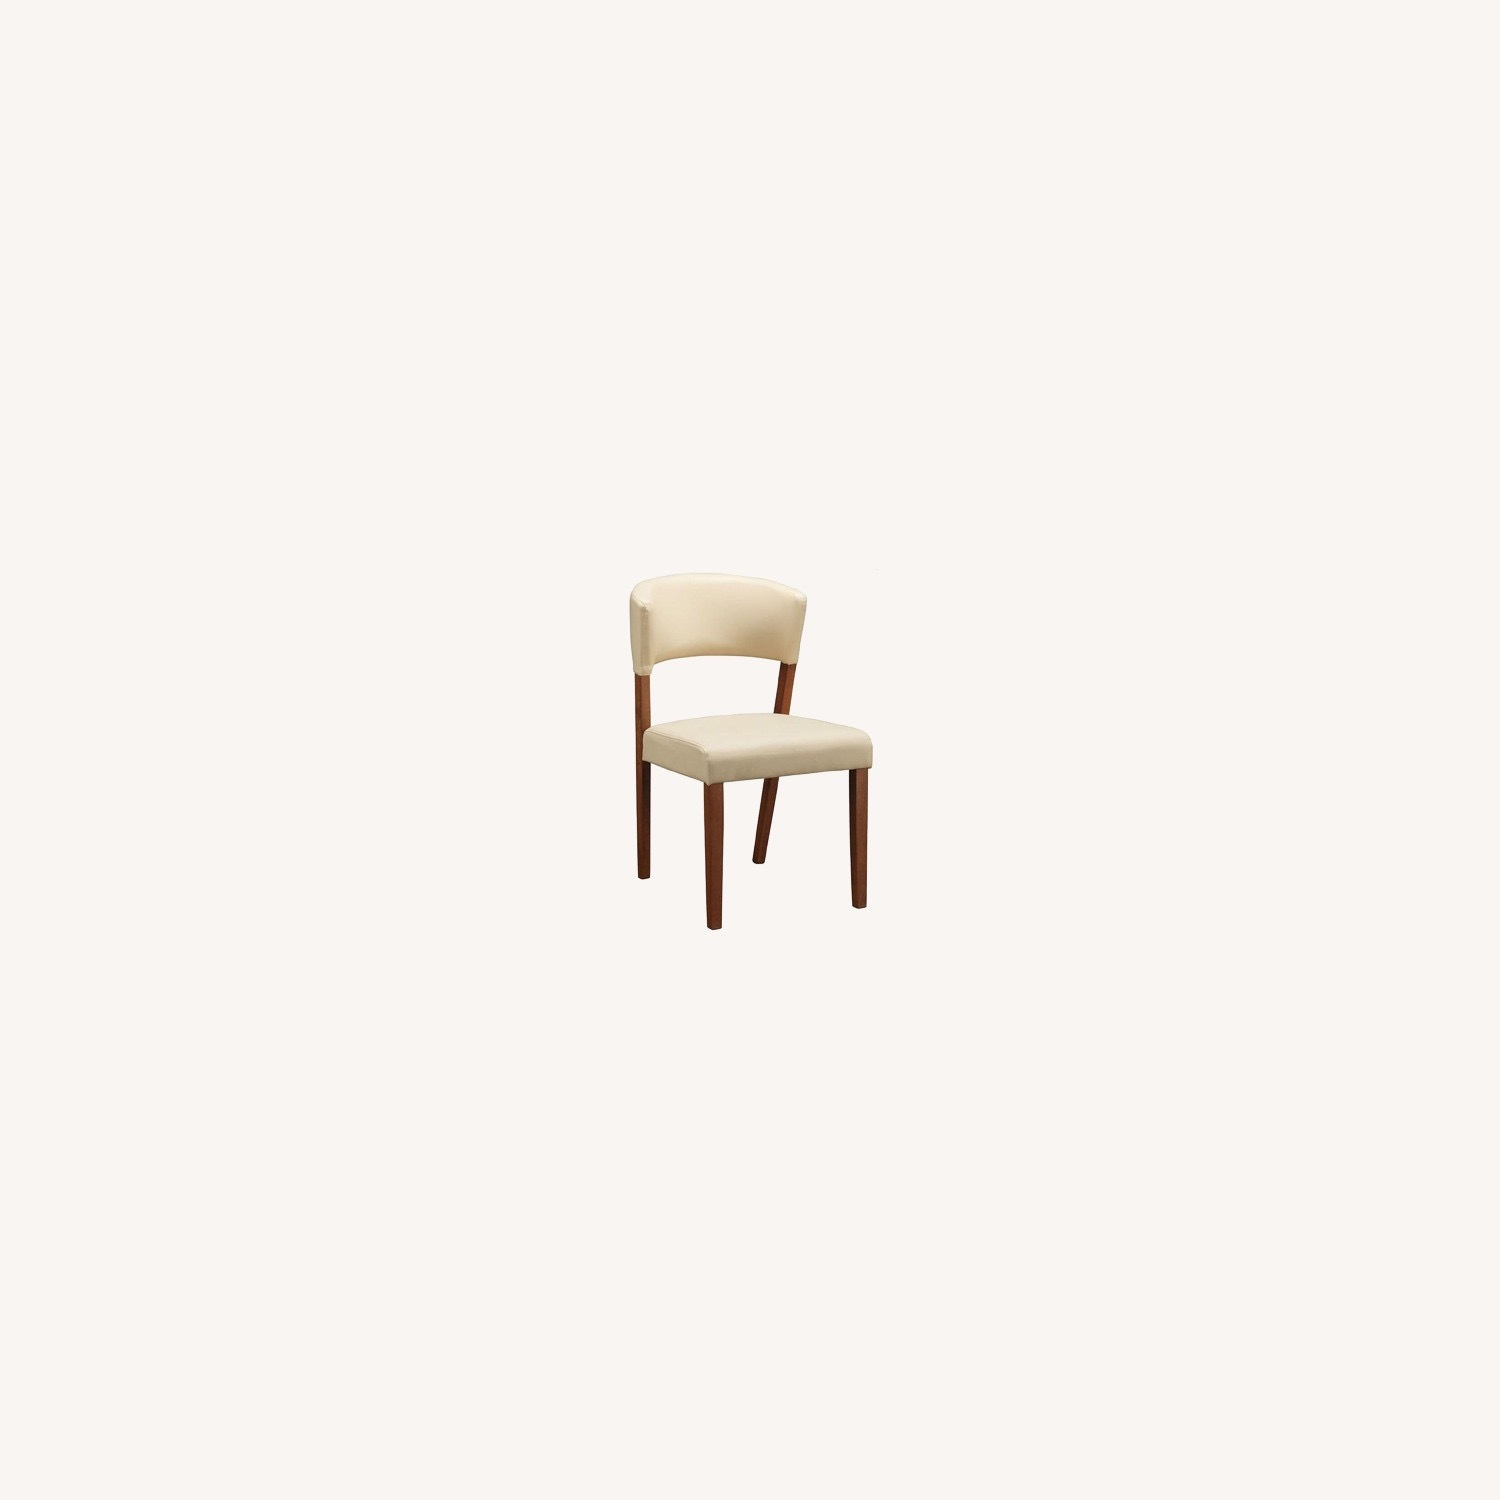 Retro Side Chair In Nutmeg & Cream Leatherette - image-5